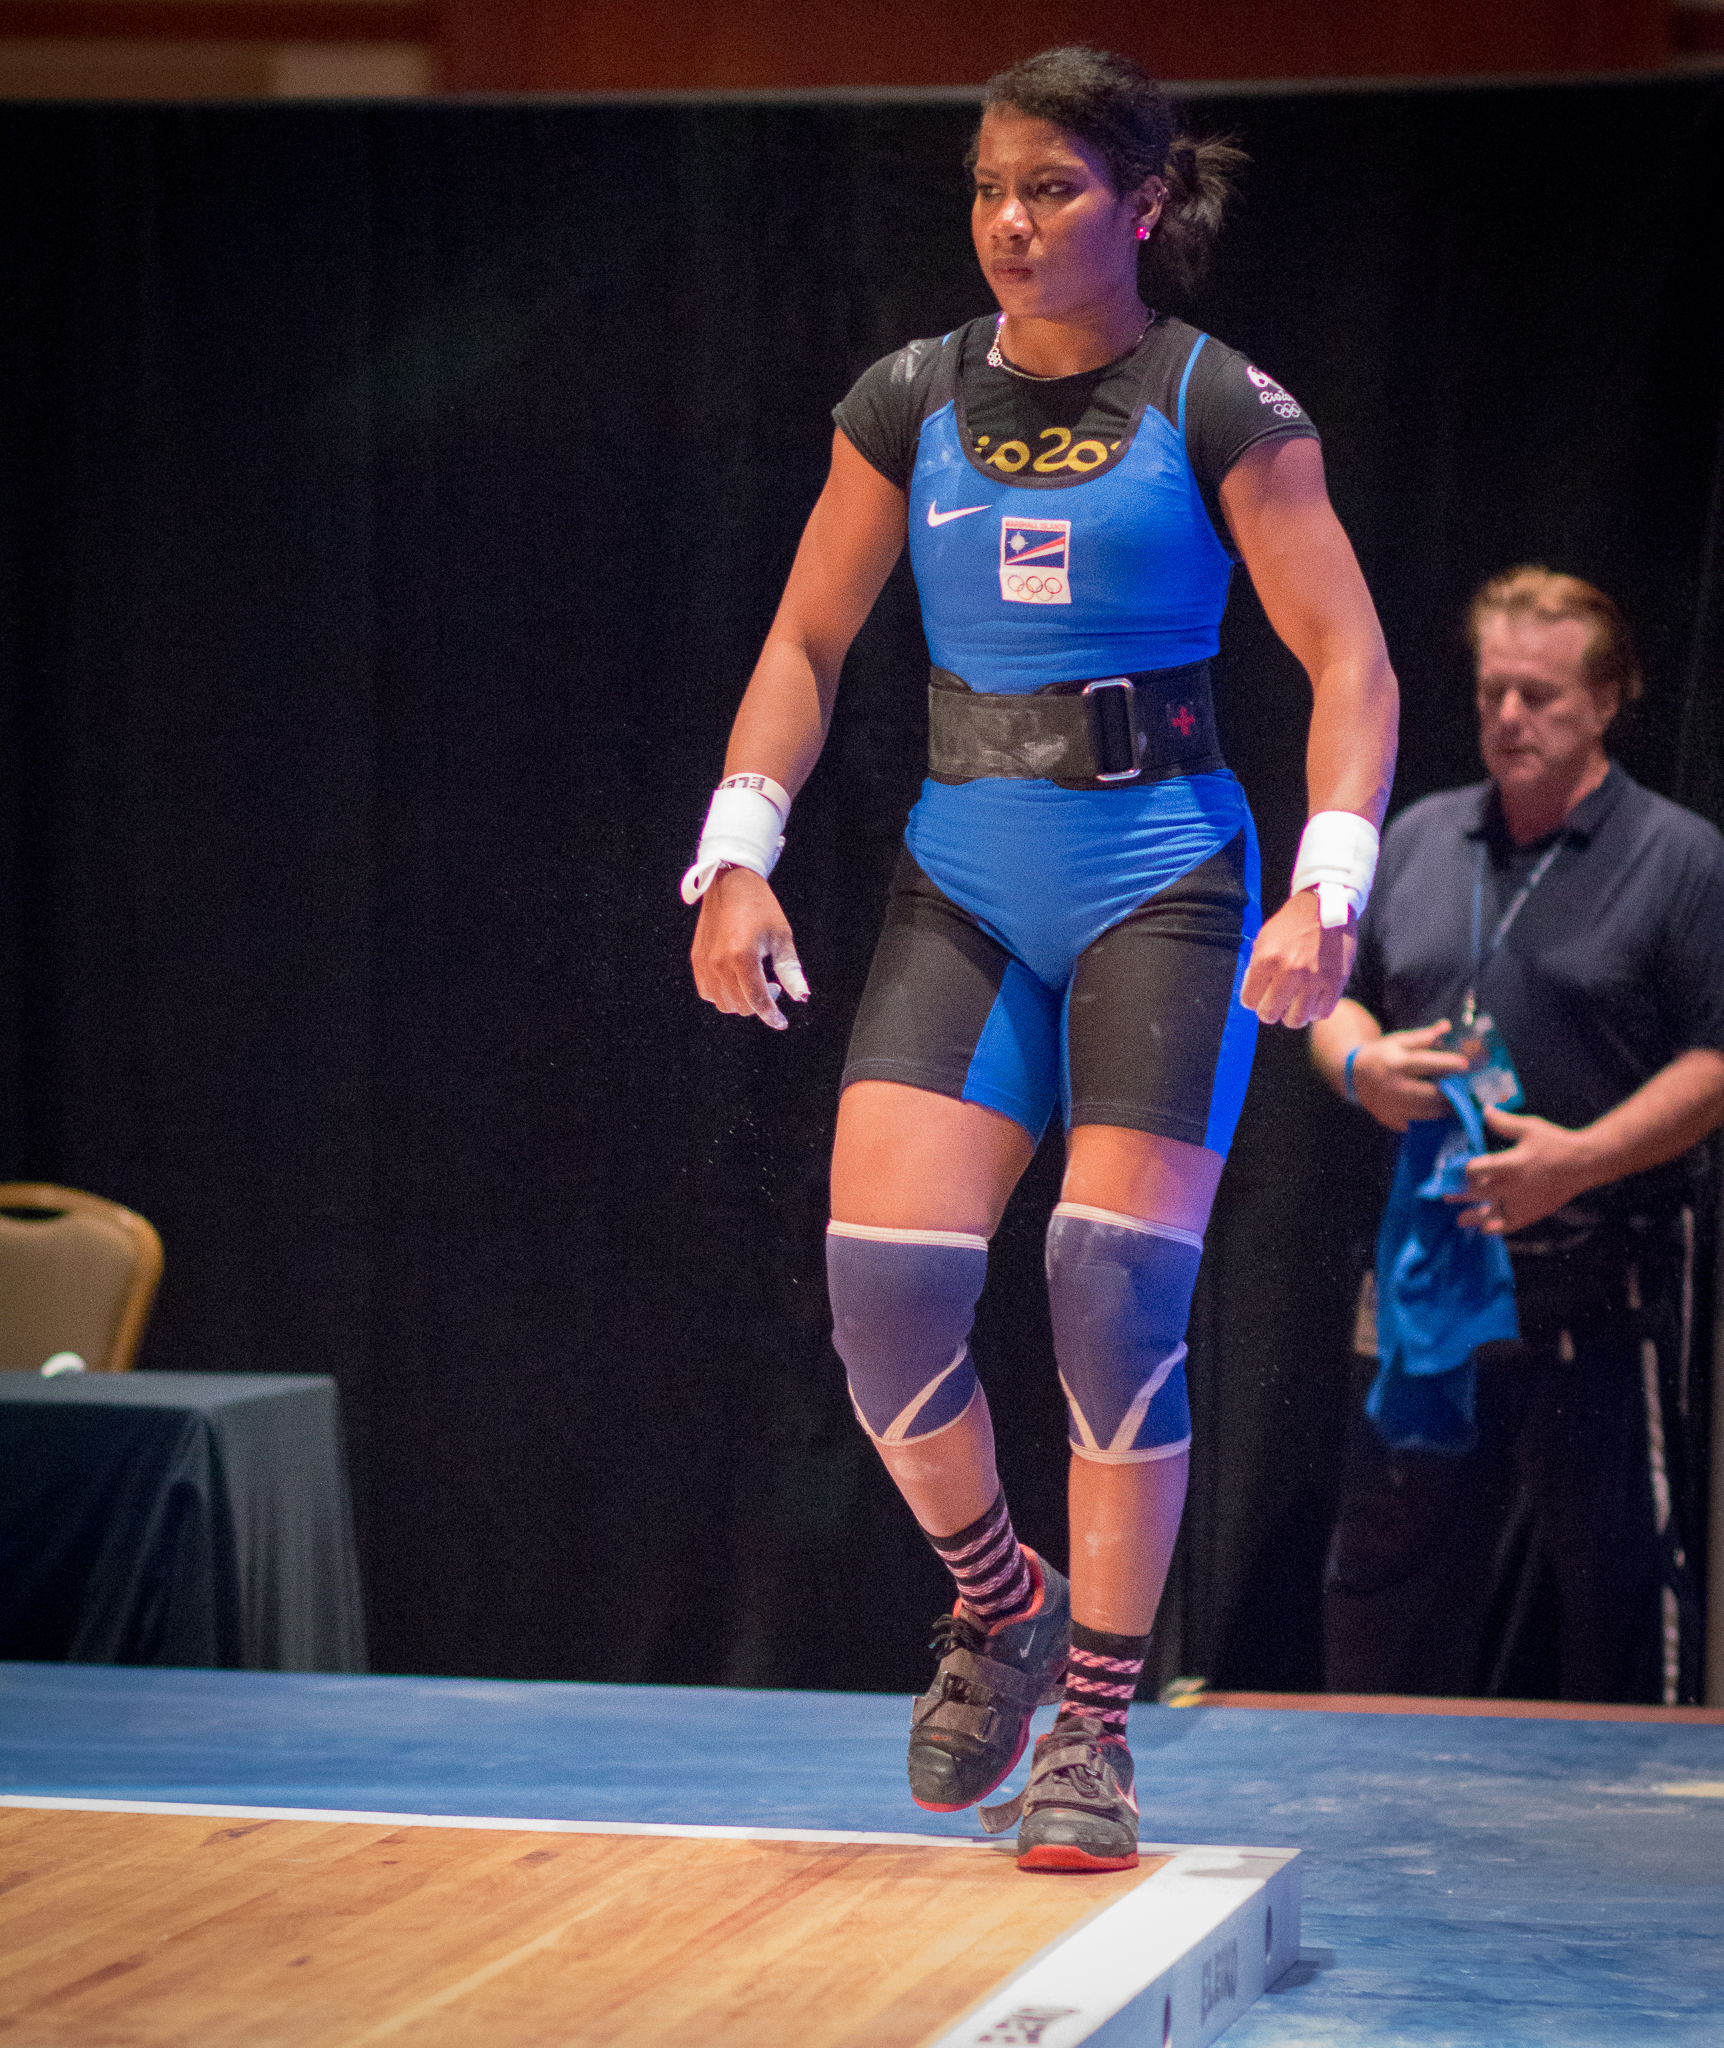 american-open-photos-session-a-weightlifters-weightlifting-photography-everyday-lifters (4 of 10).jpg